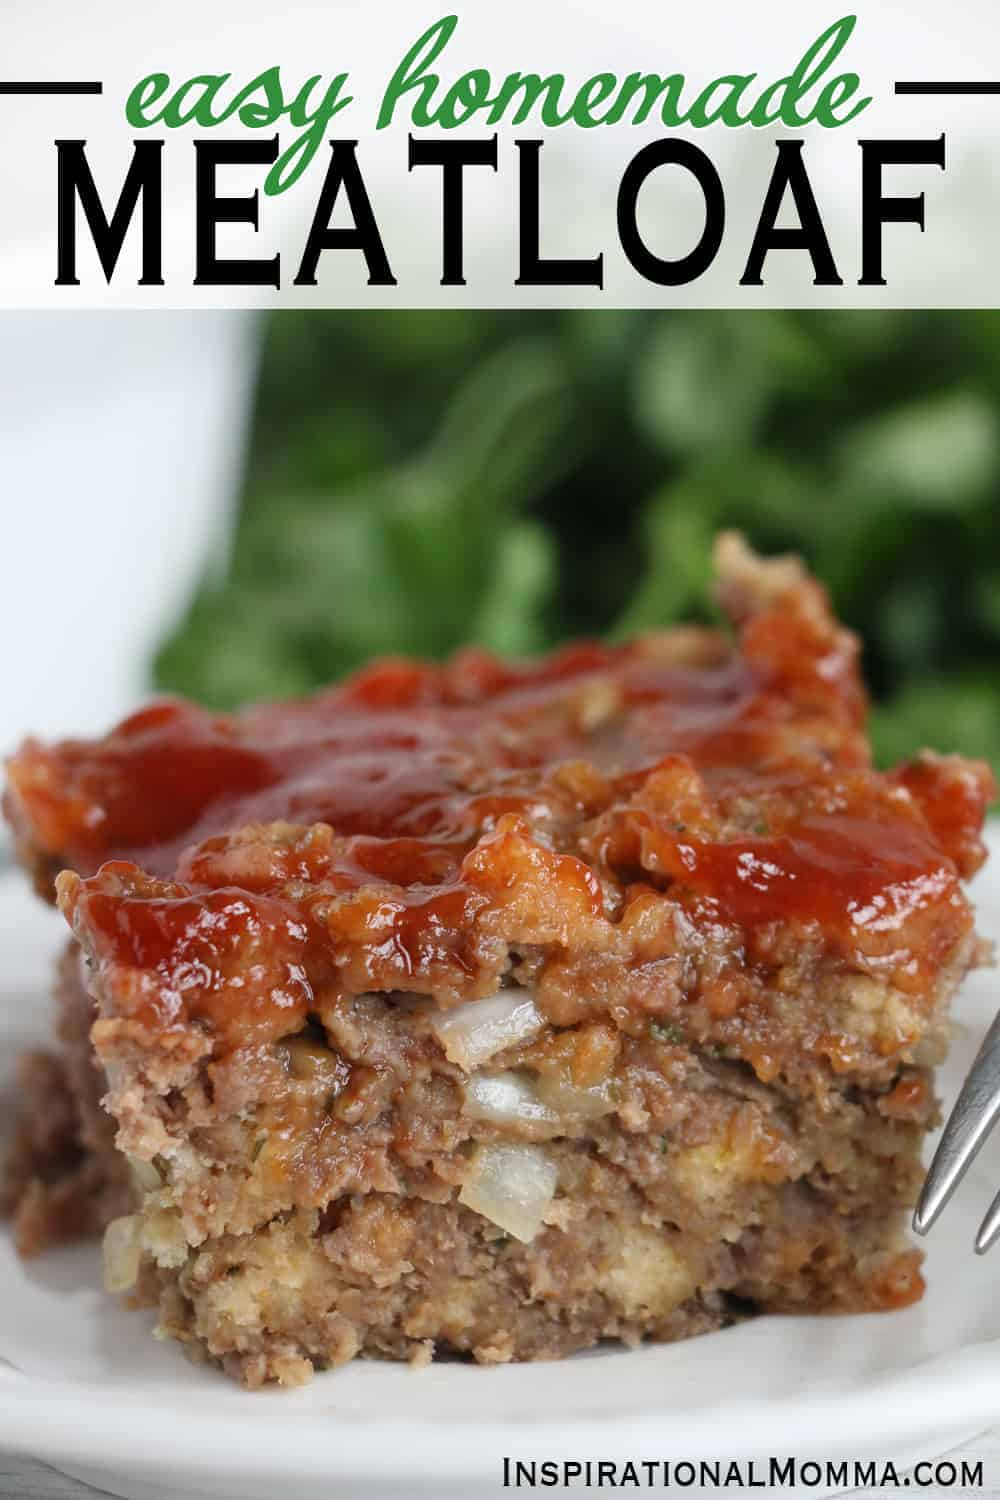 This Easy Homemade Meatloaf will become a family favorite. The sensational flavors will put a smile on everyone's face! Easy to make and perfectly tender! #inspirationalmomma #homemademeatloaf #meatloaf #homemade #dinner #easy #weeknightdinner #familydinner #groundbeef #hamburger